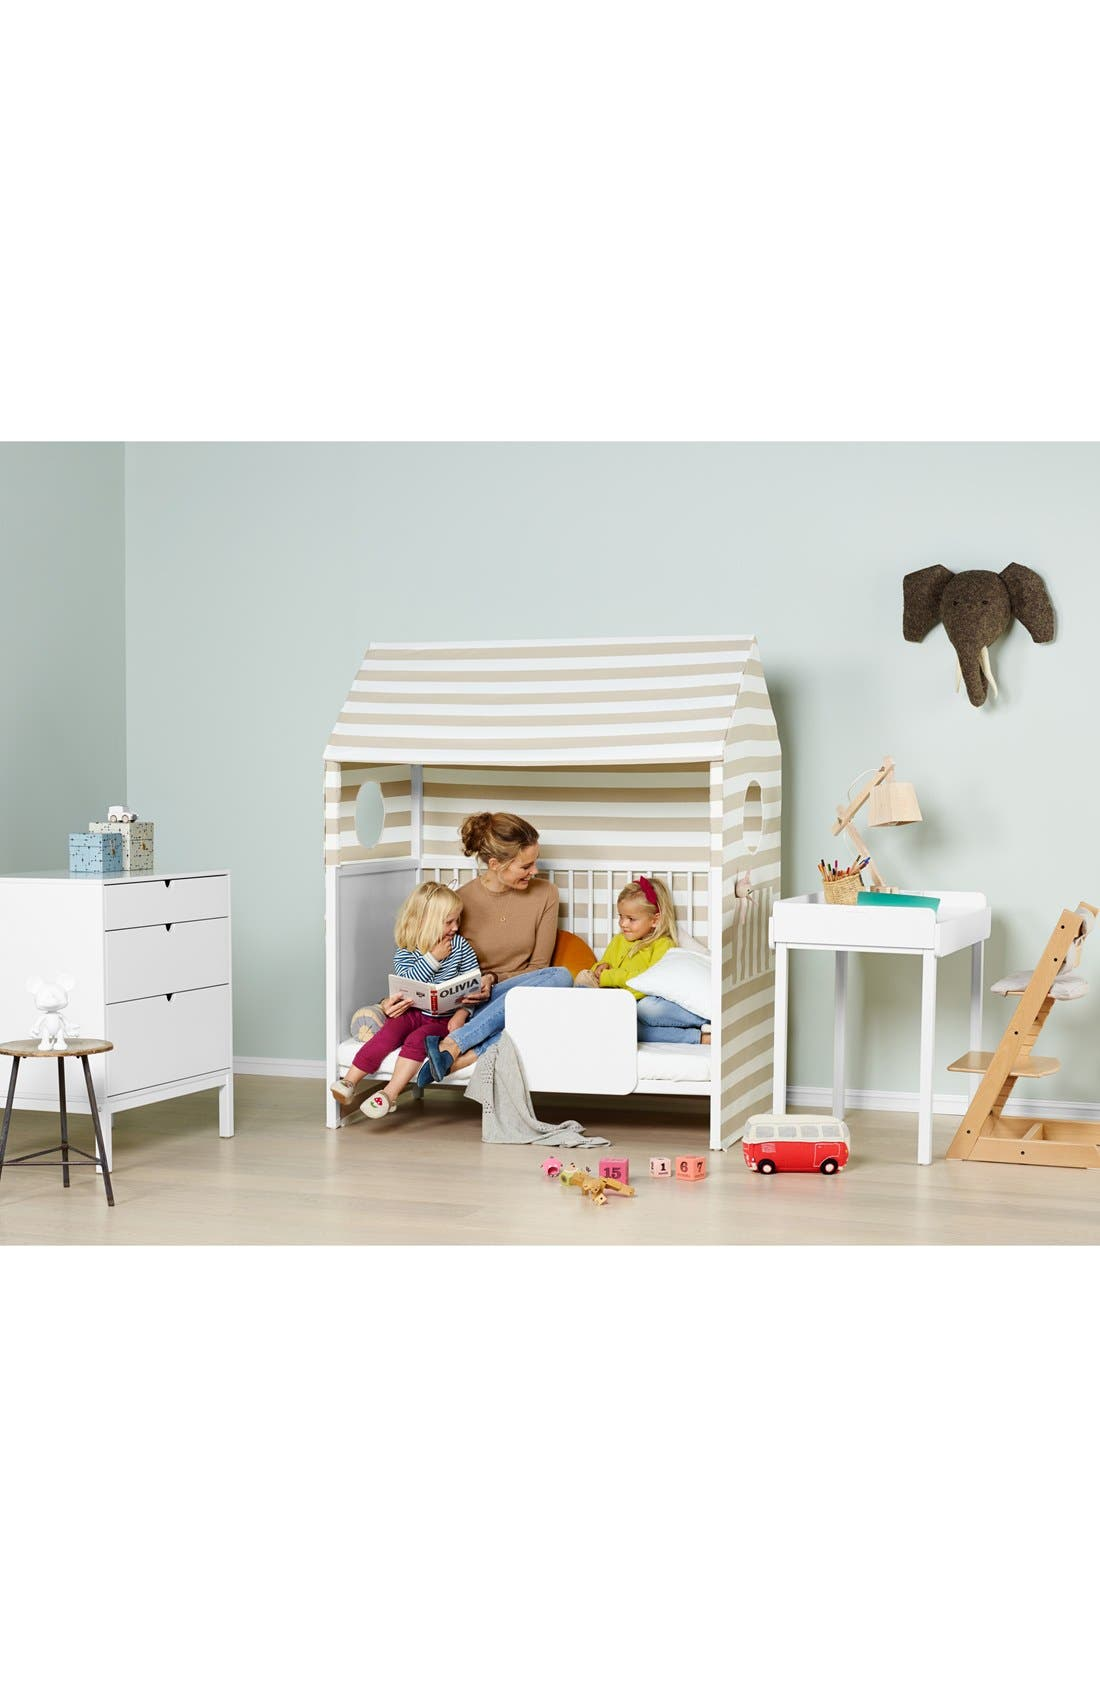 STOKKE,                             'Home<sup>™</sup>' Toddler Bed Tent,                             Alternate thumbnail 3, color,                             270